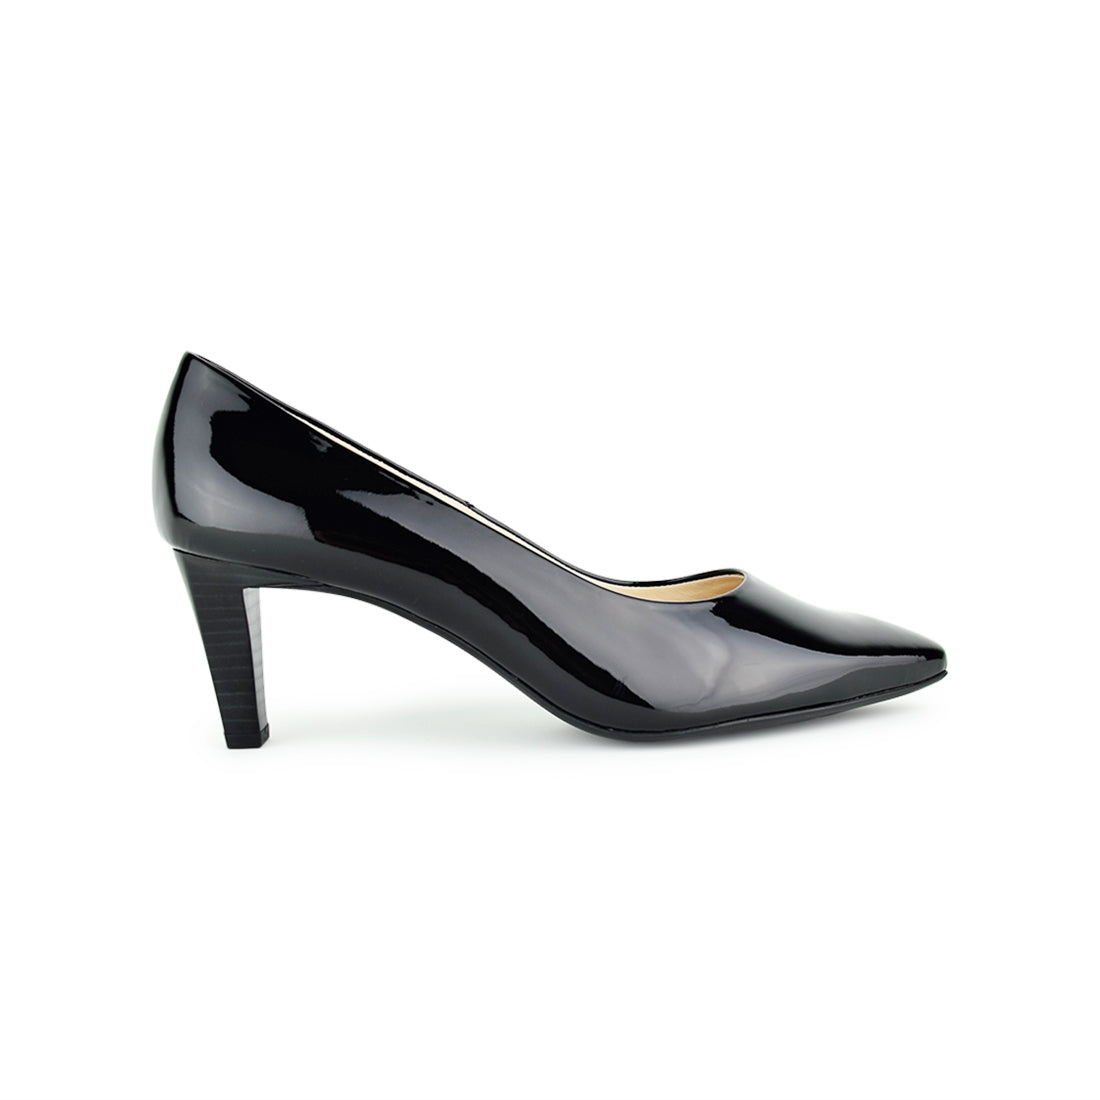 LORA - Peter Kaiser Court Shoe Black Patent